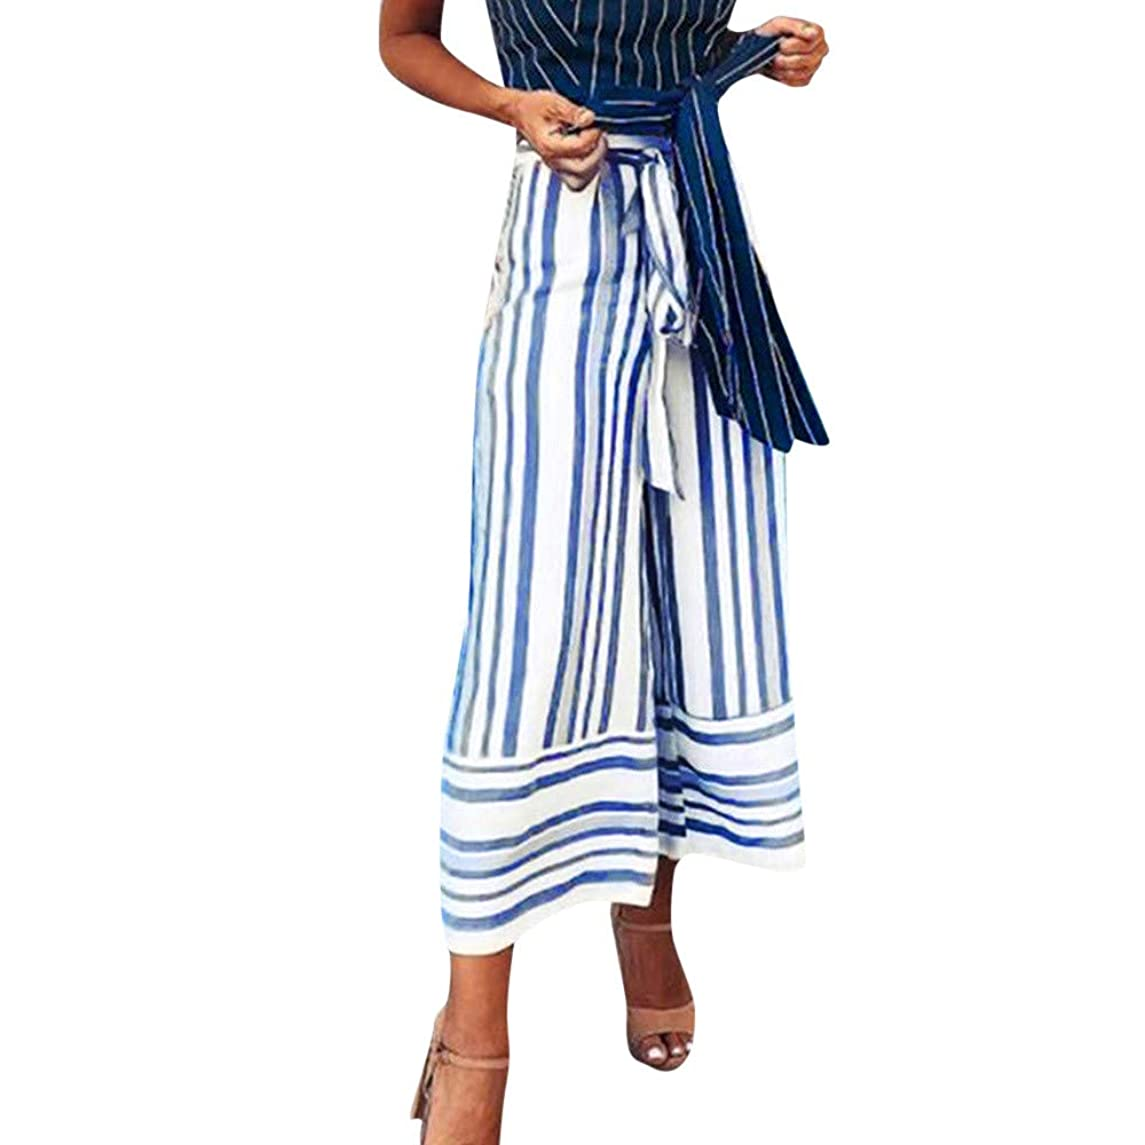 2018 Palazzo Pants,Casual Striped Printed Wide Leg Waistband High Waist Trousers by-NEWONESUN